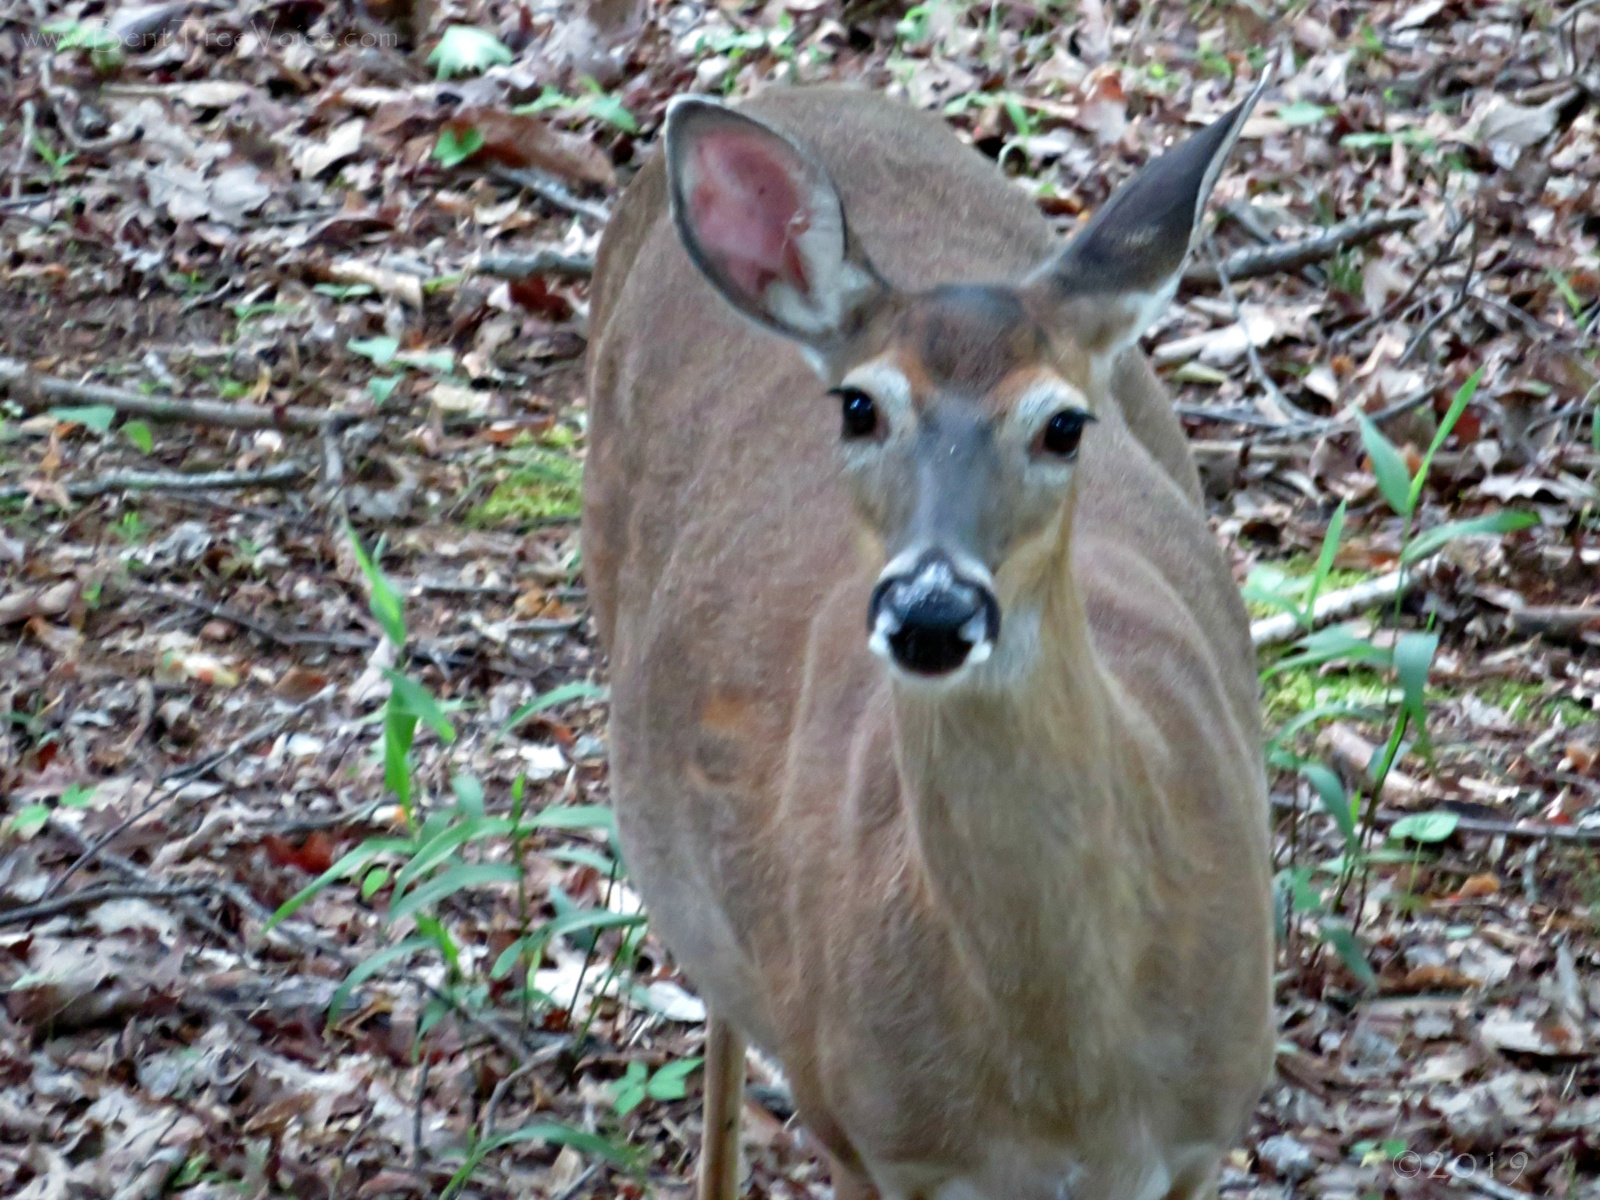 May 7, 2019 - Pregnant Doe in Bent Tree